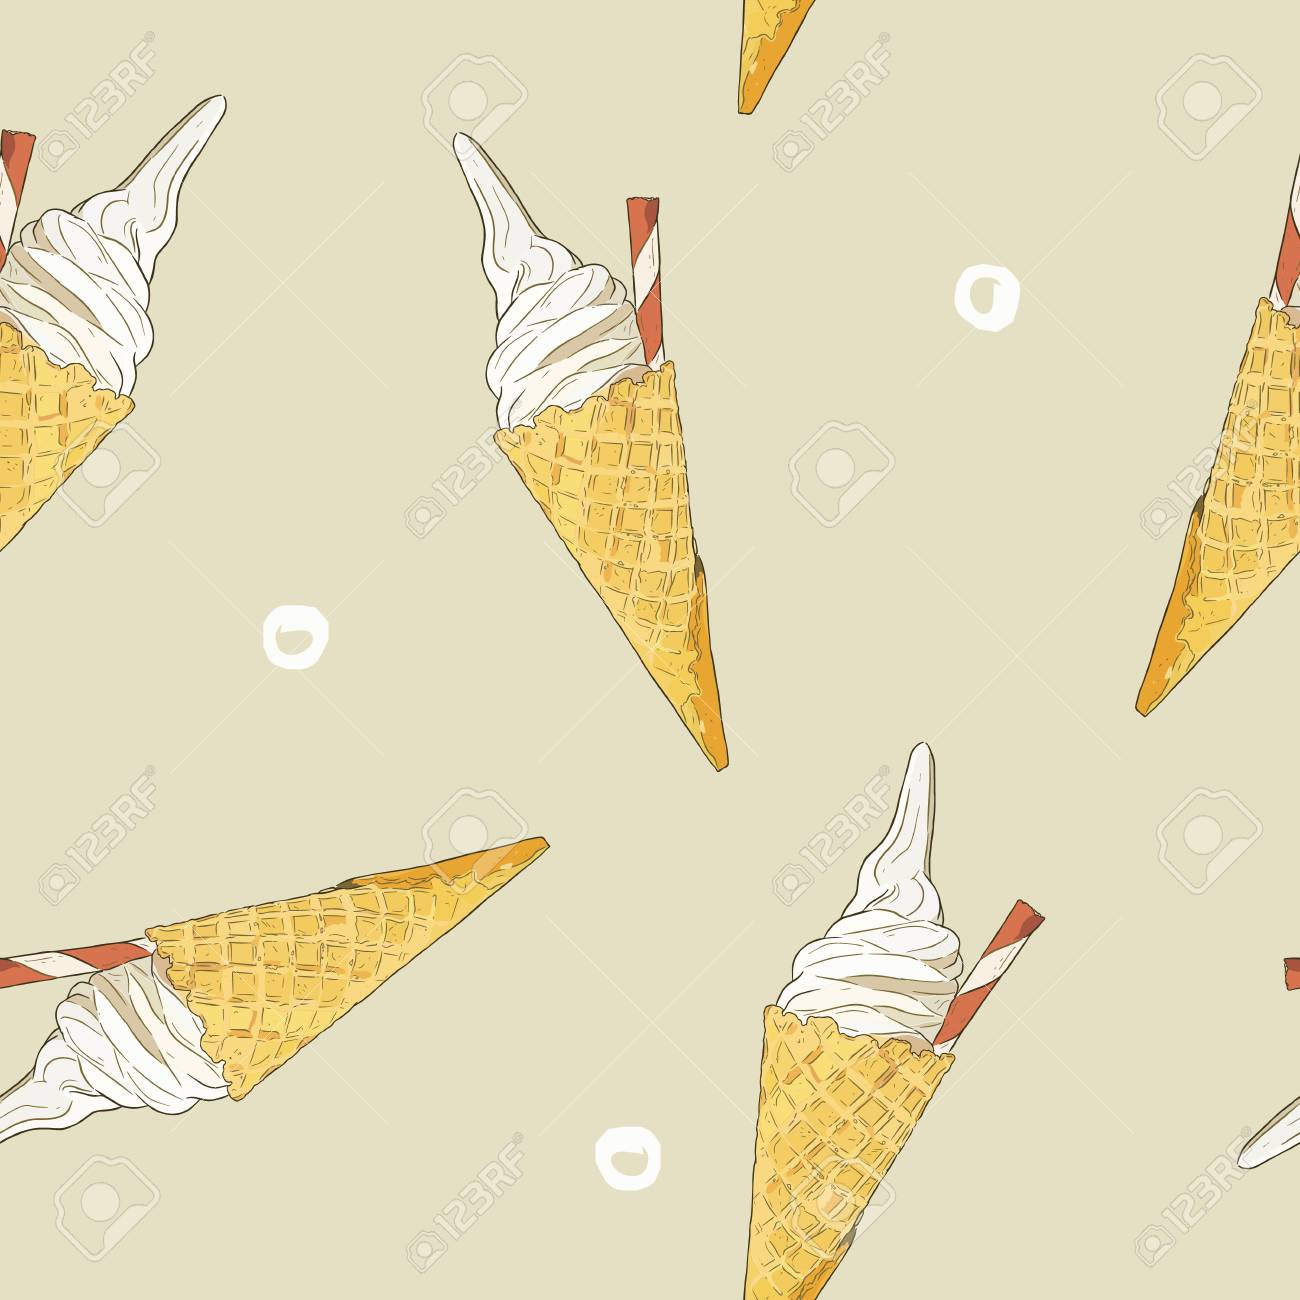 Ice Cream Cone Template | A Ice Cream Cone Pattern Royalty Free Cliparts Vectors And Stock